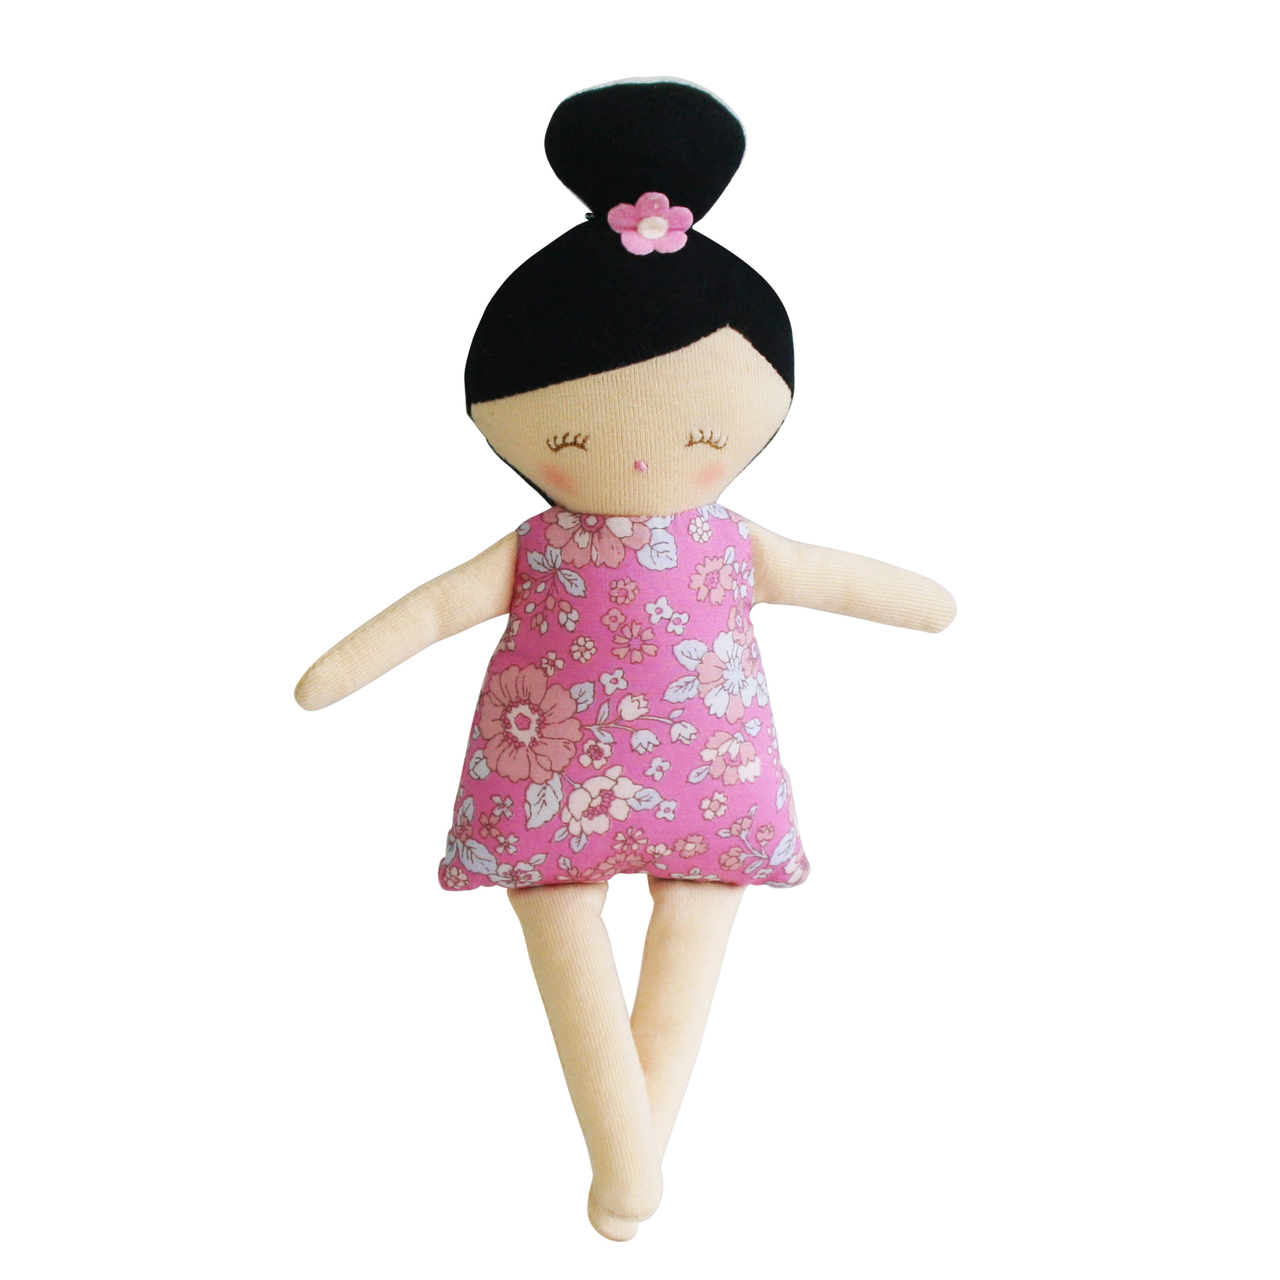 Maggie Squeaker Doll in Pink Floral by Alimrose